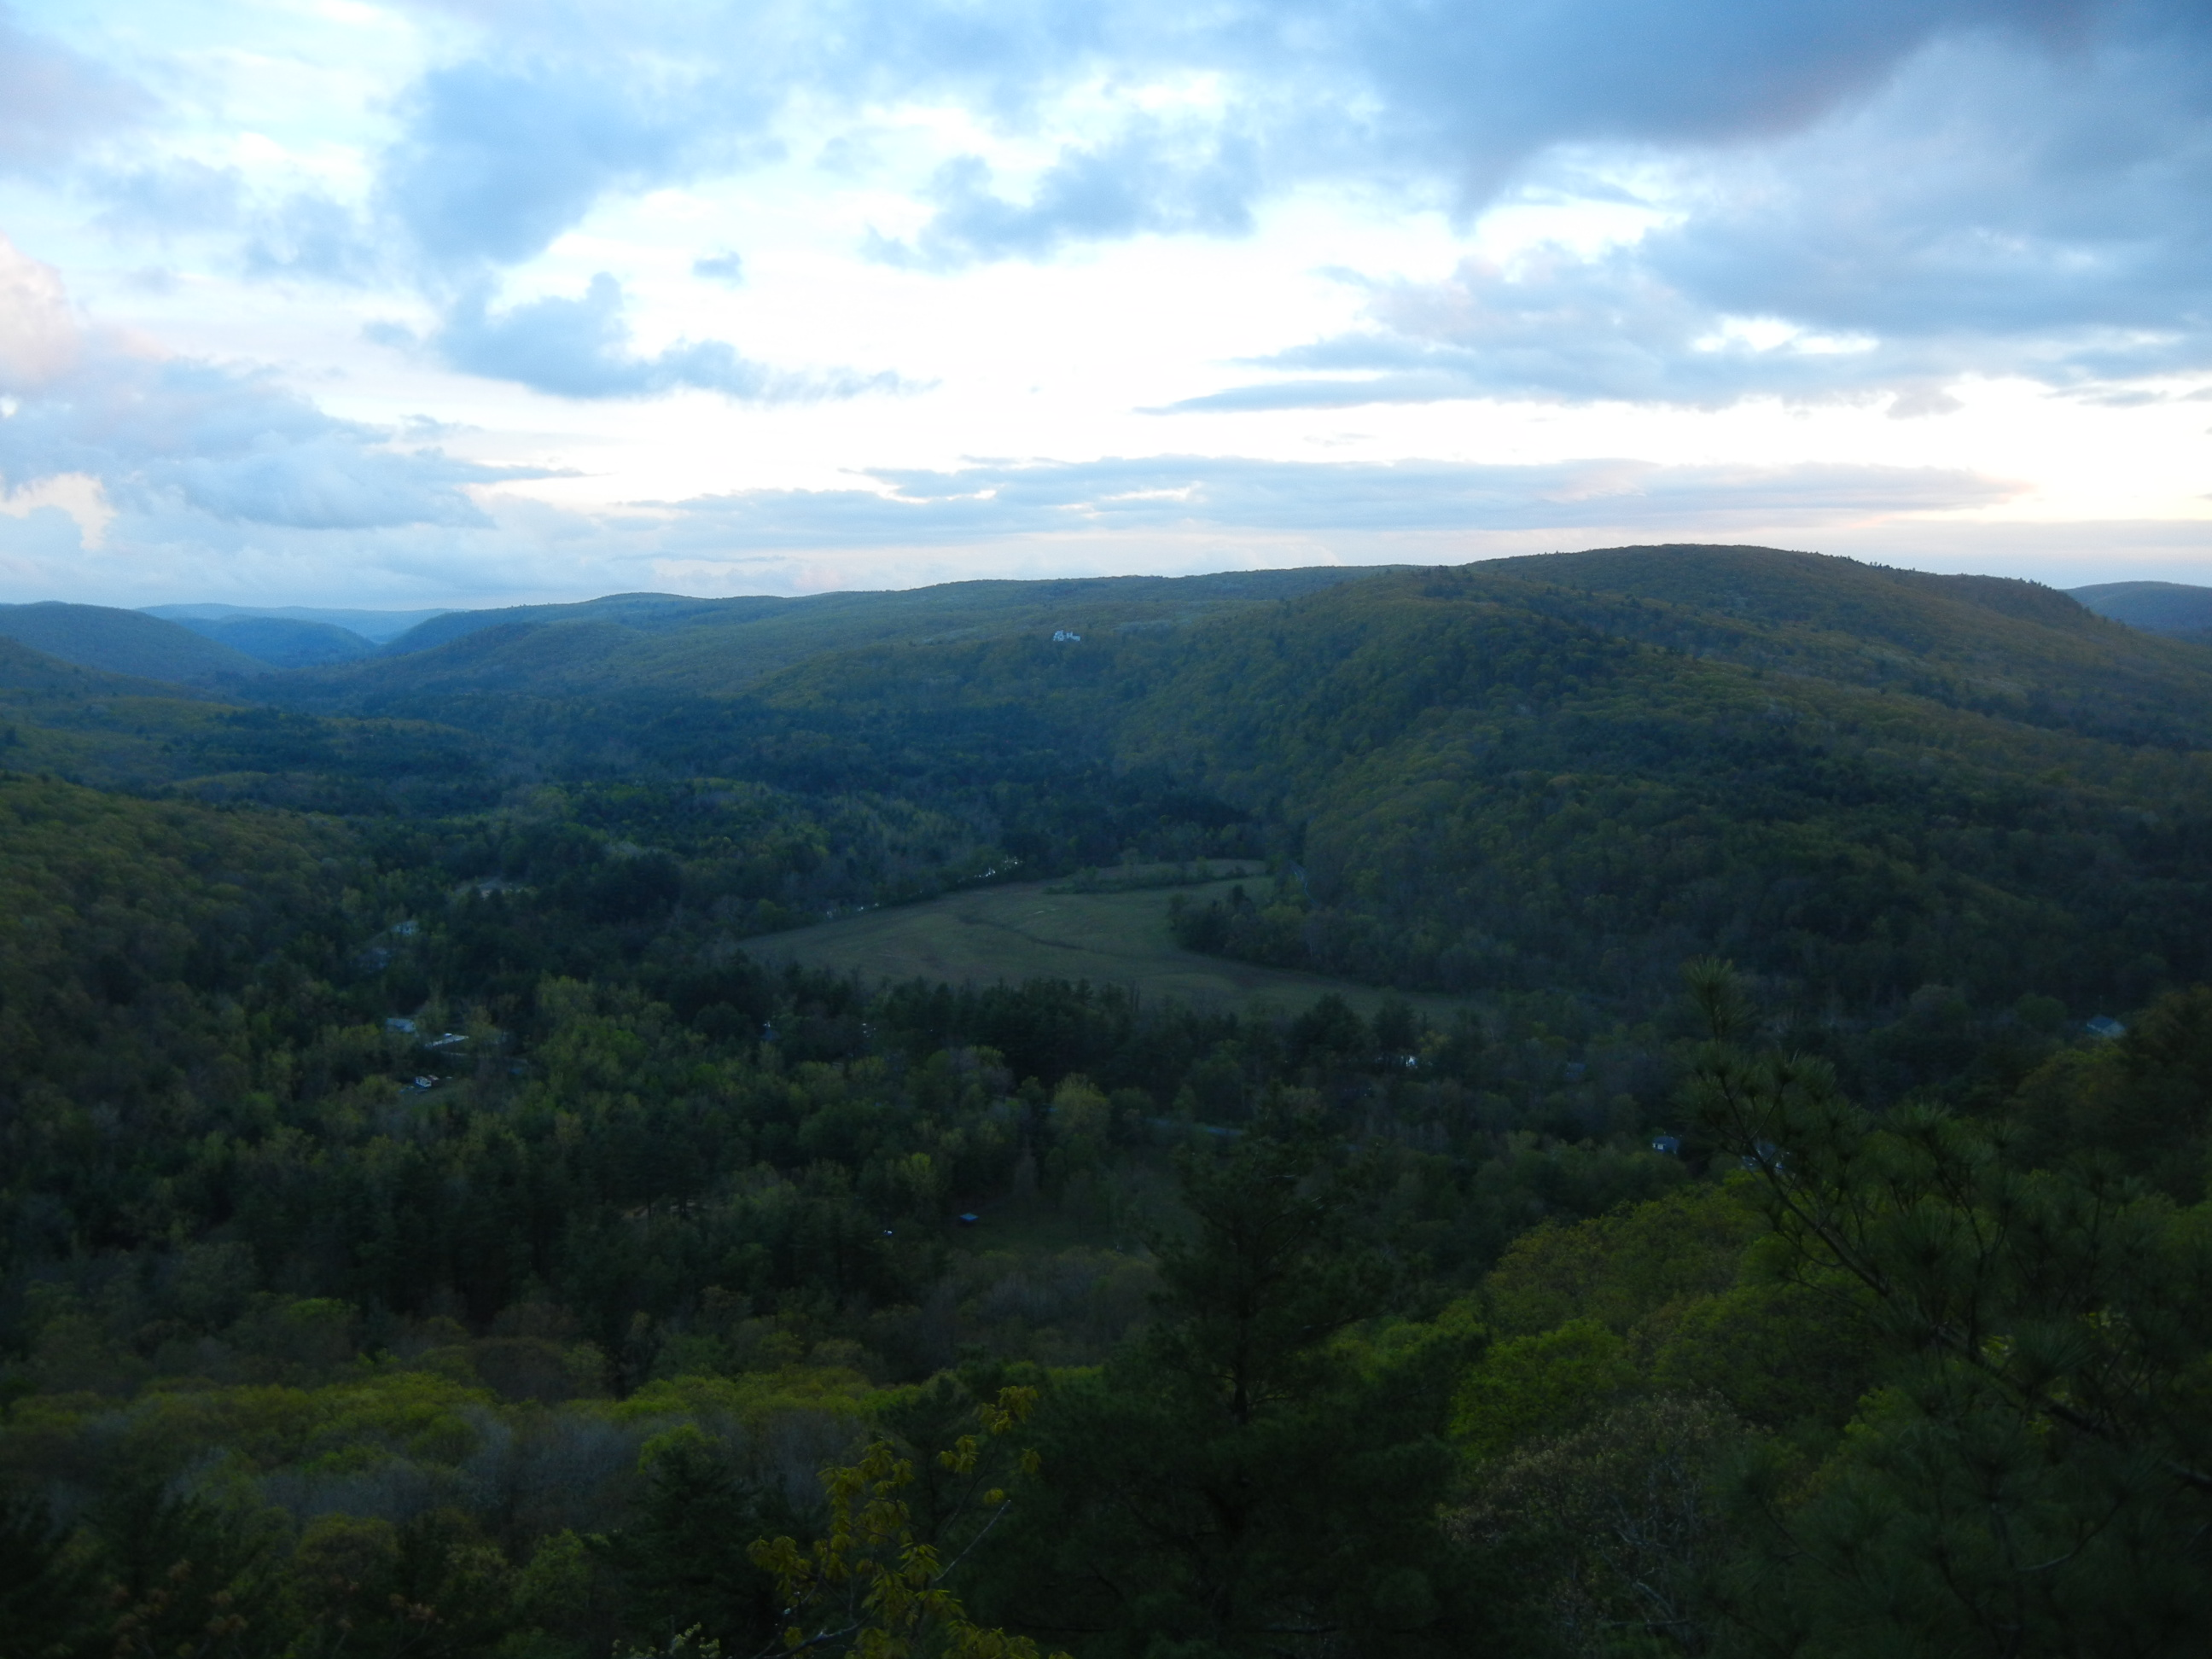 ben-smith-sharon-mountain-and-housatonic-valley-from-lookout-point-barrack-mountain-canaan